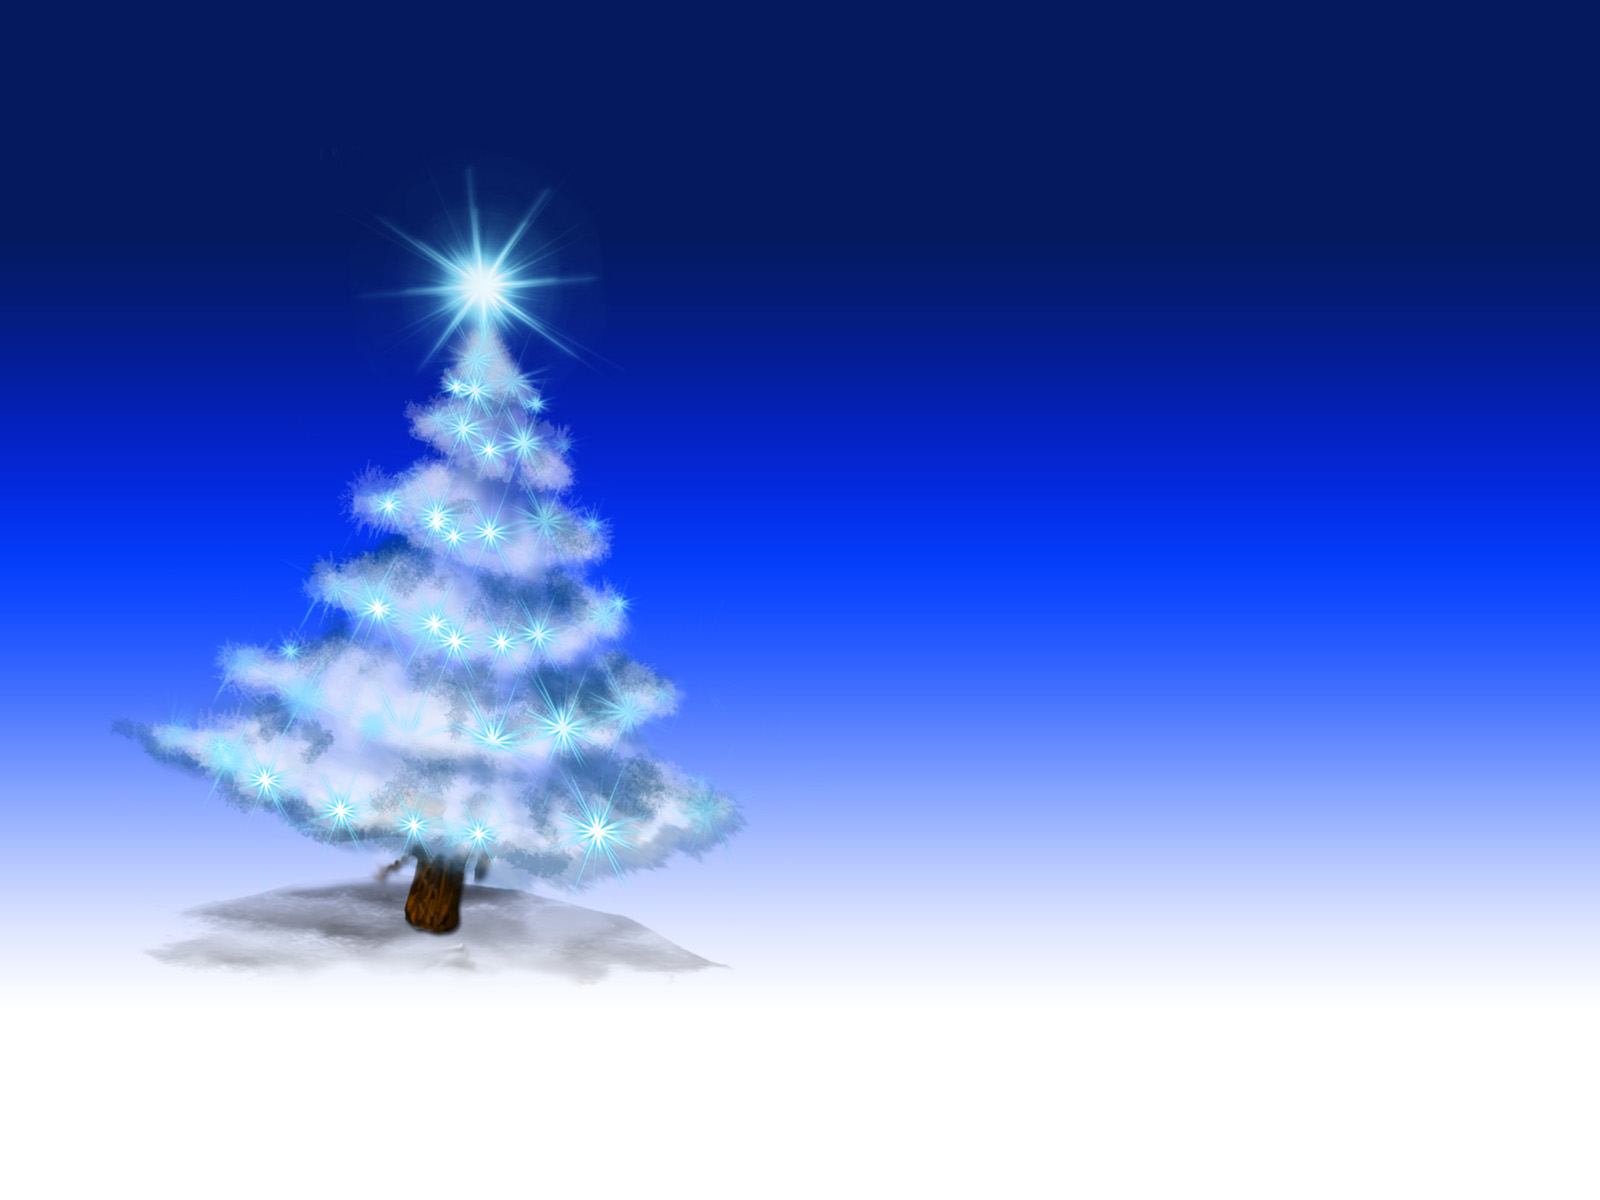 Christmas Tree on Blue Powerpoint Backgrounds